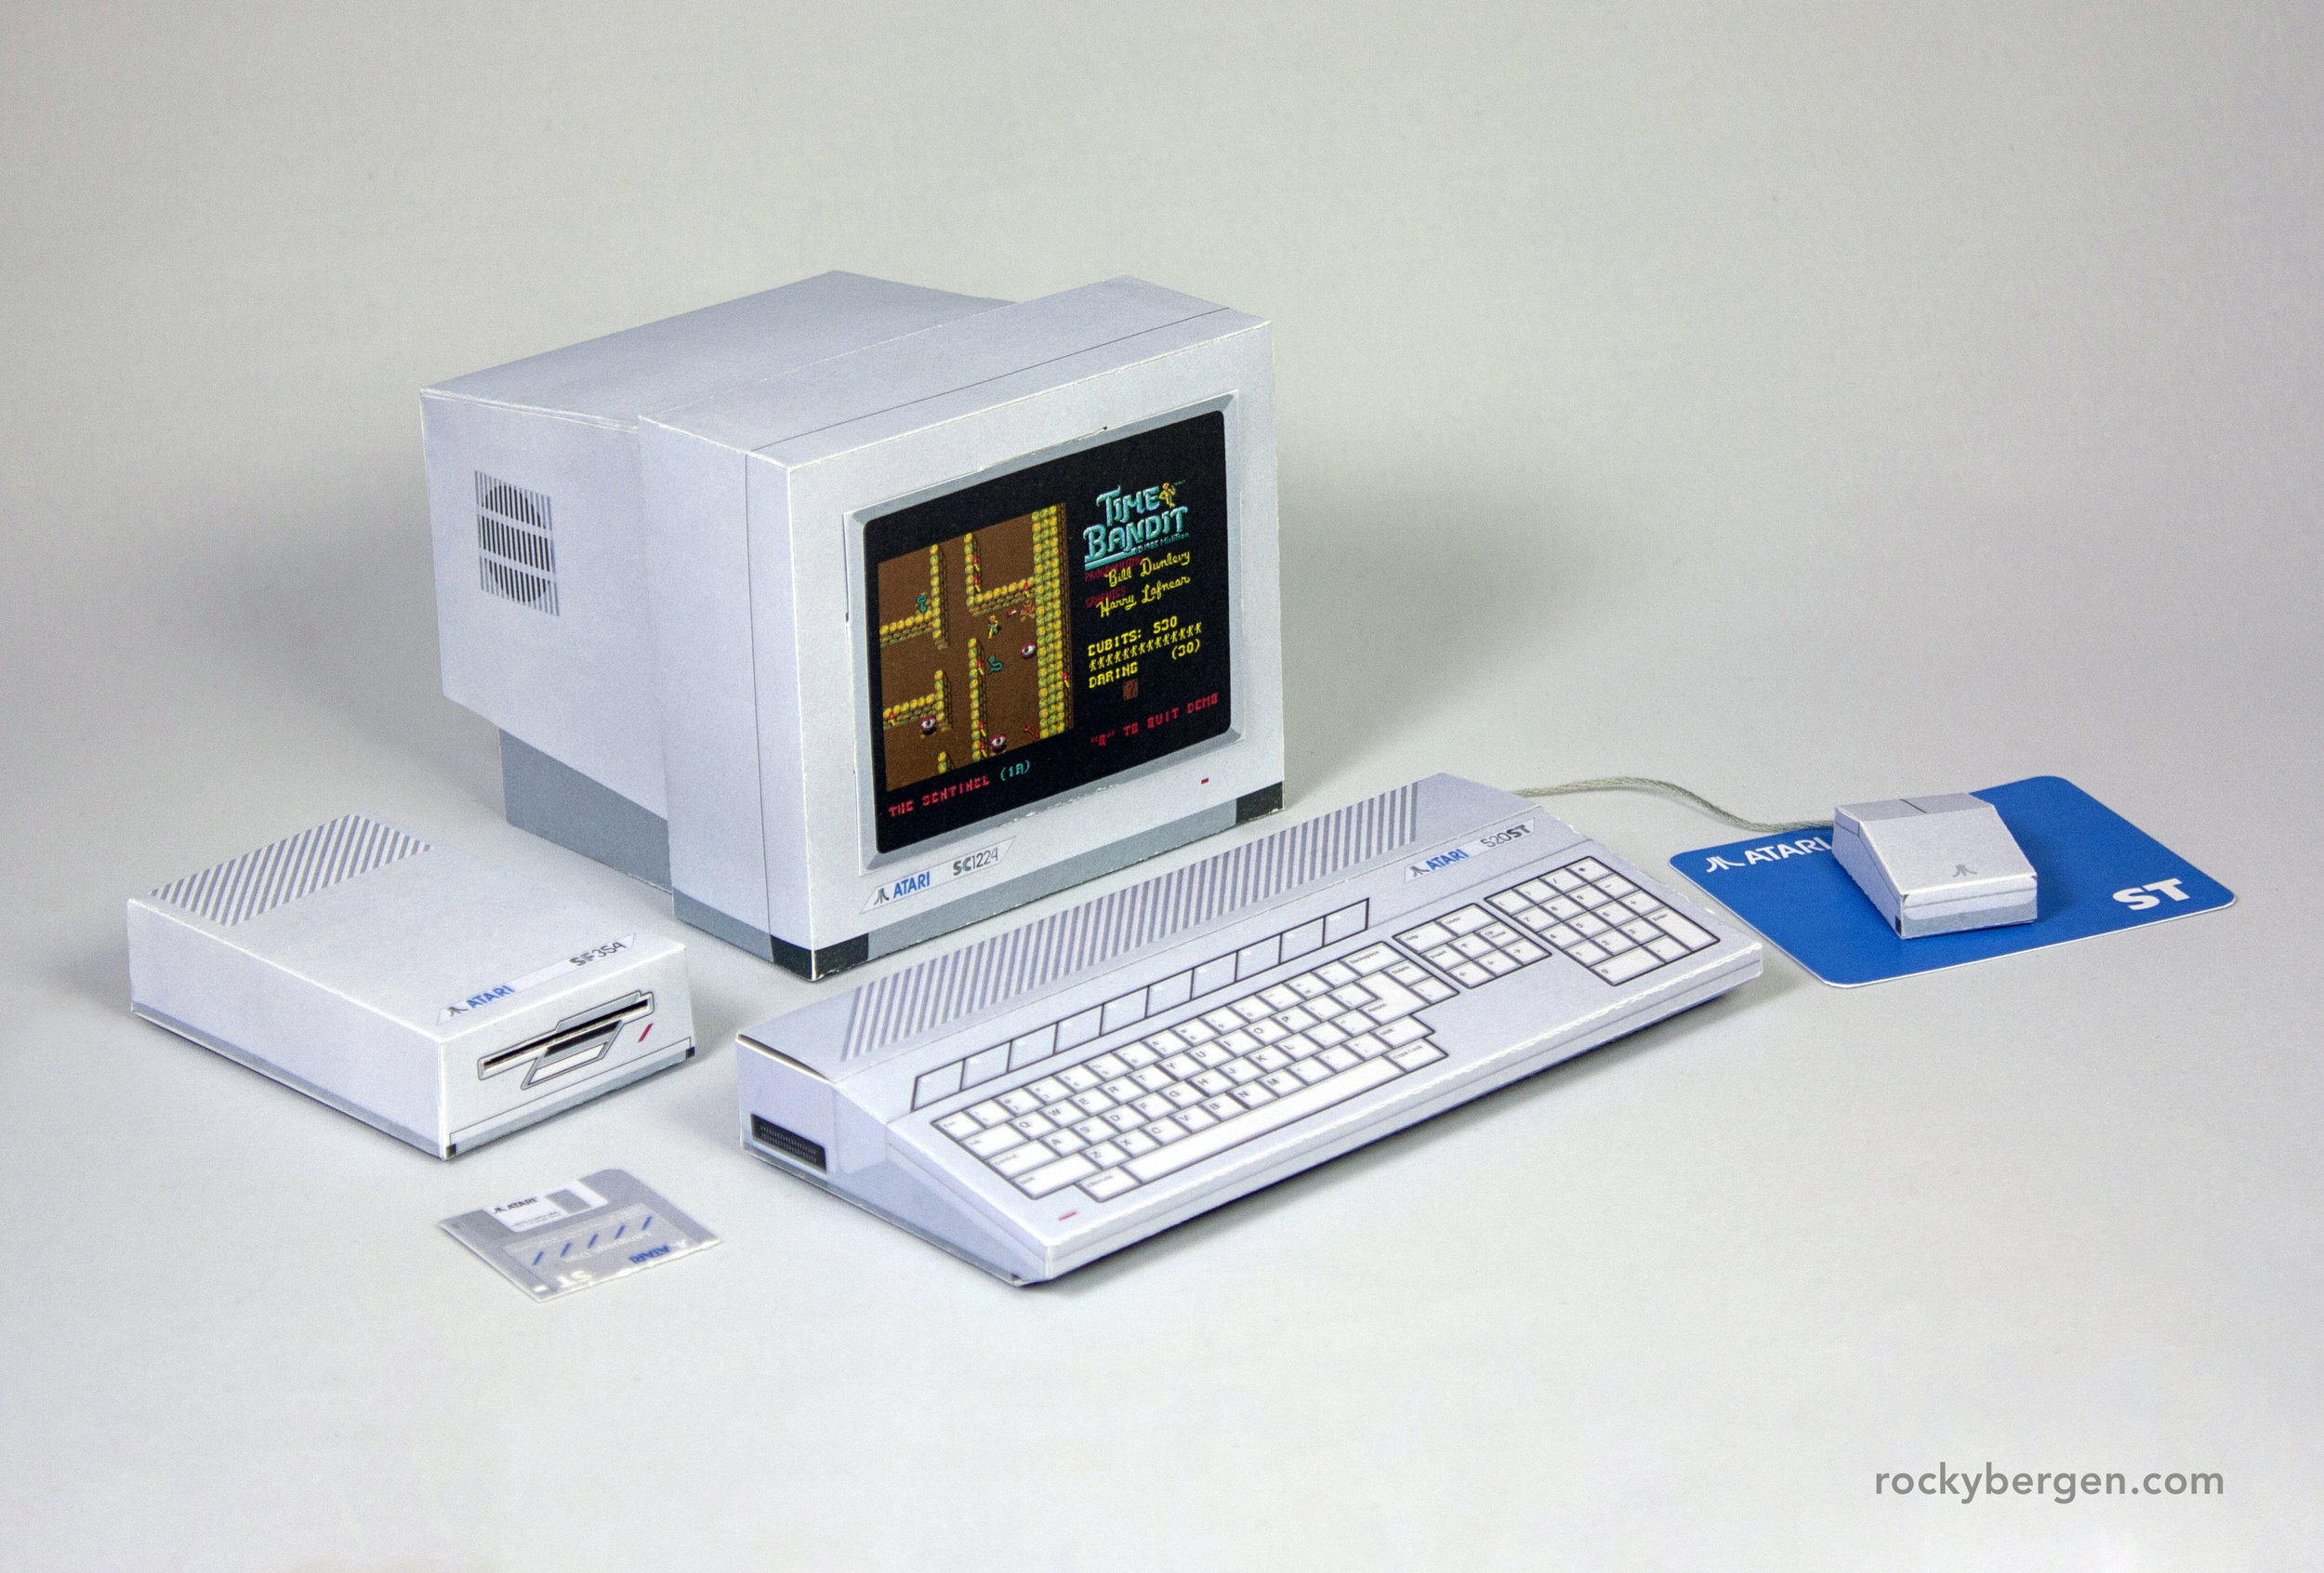 While the computer may lack an internal hard drive, it has a much smaller footprint than it's Amiga 500 counterpart.